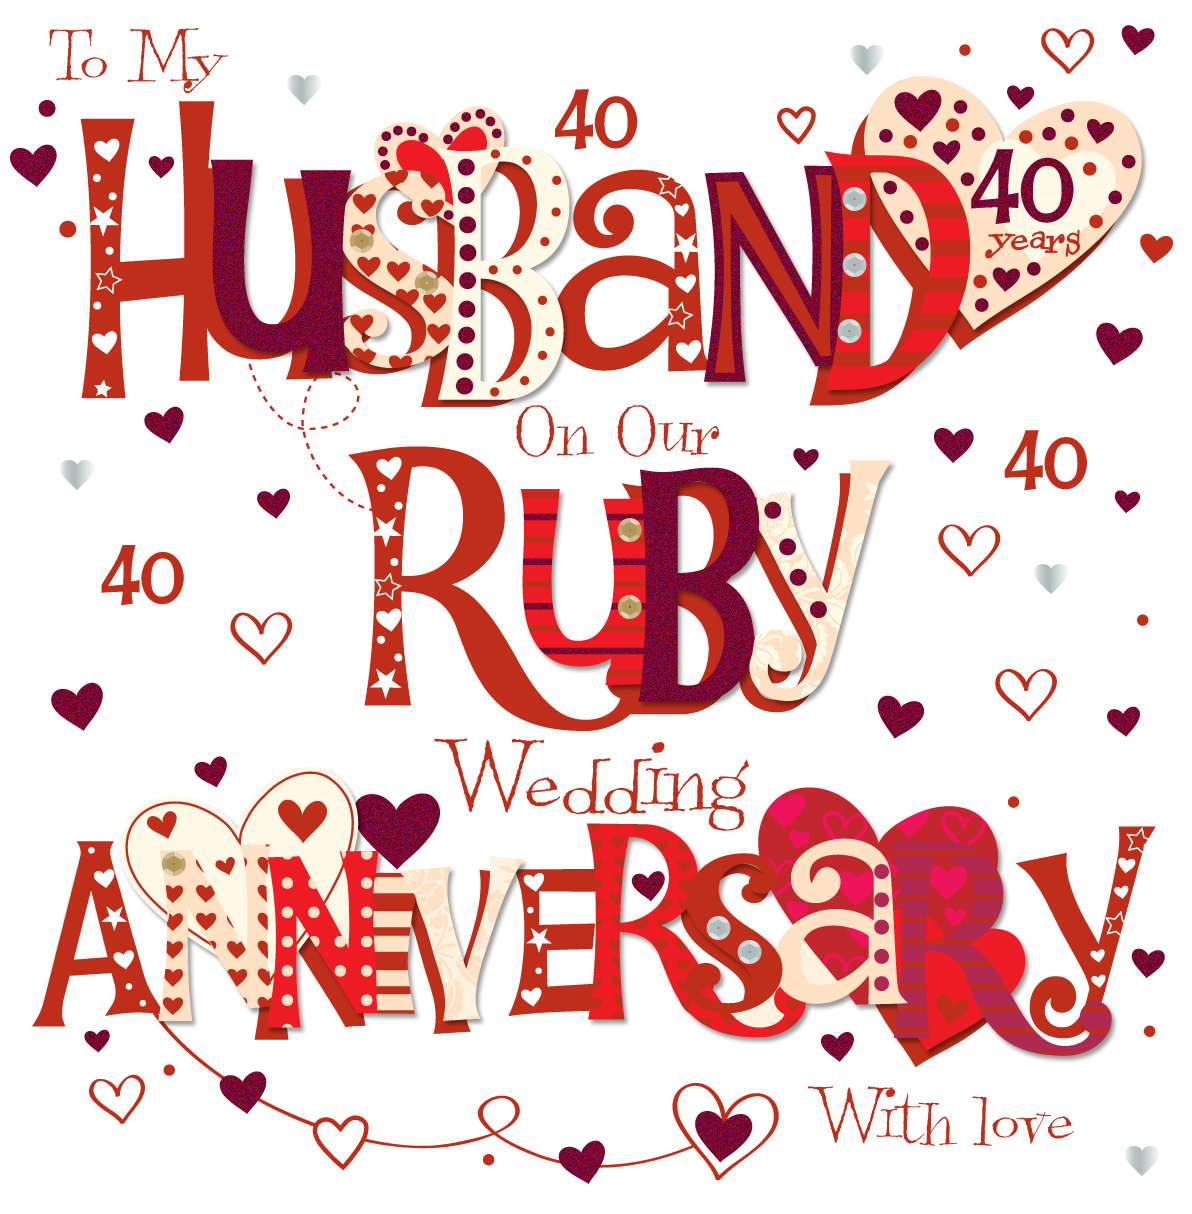 Husband ruby 40th wedding anniversary greeting card cards love kates husband ruby 40th wedding anniversary greeting card m4hsunfo